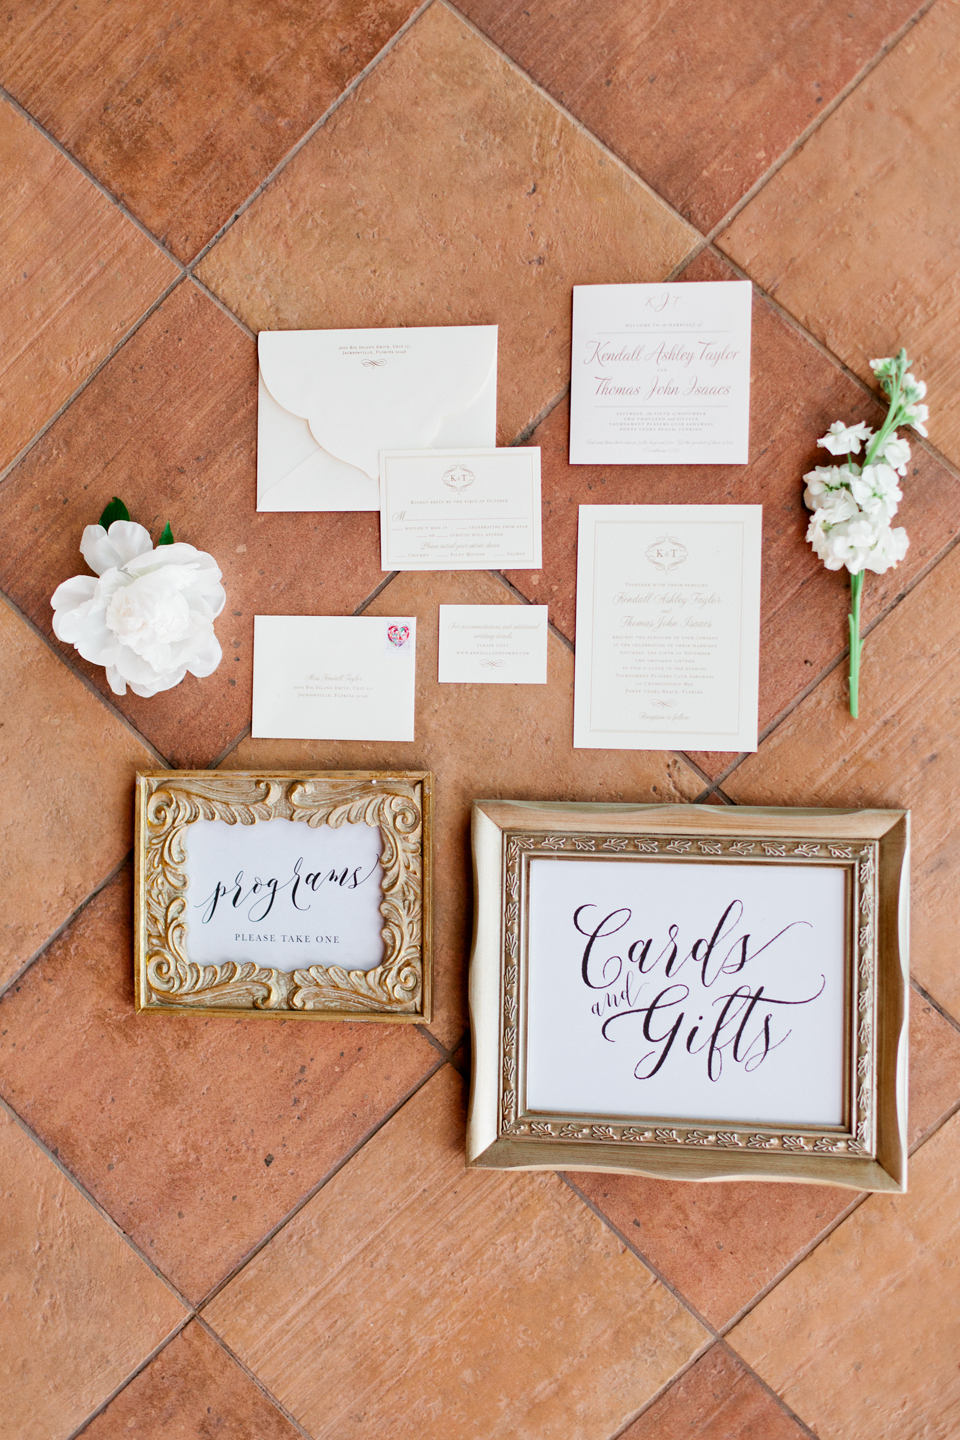 Picture of a wedding stationary suite with hand lettered signage and floral accents.  These are laying on terracotta tile flooring at the TPC Sawgrass in Ponte Vedra, Florida